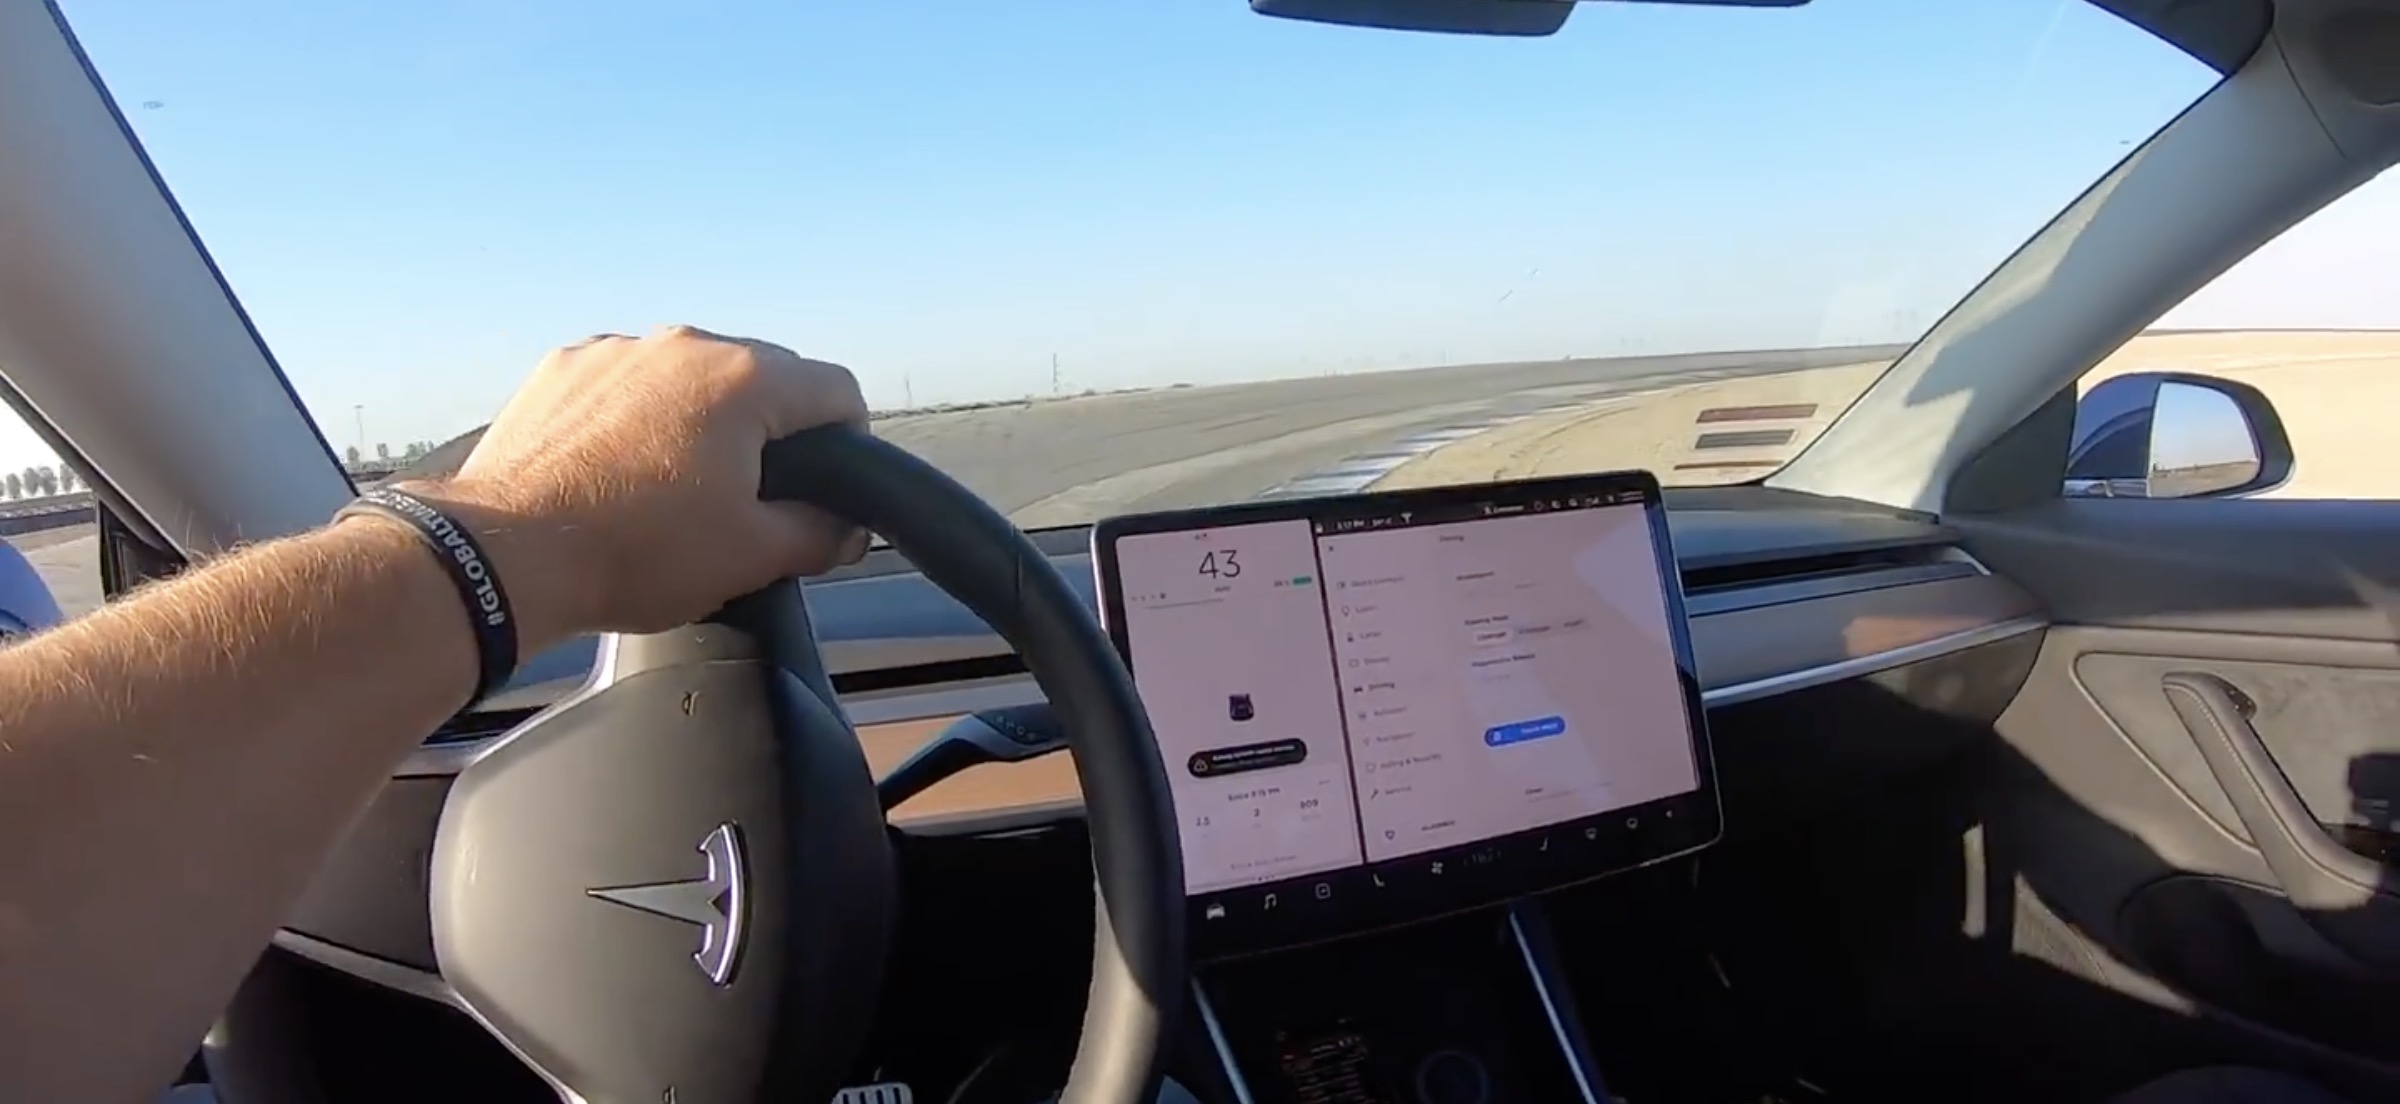 Tesla Model 3 Performance sets fastest time at Global Attack event on track mode, gets disqualified for 'being electric'